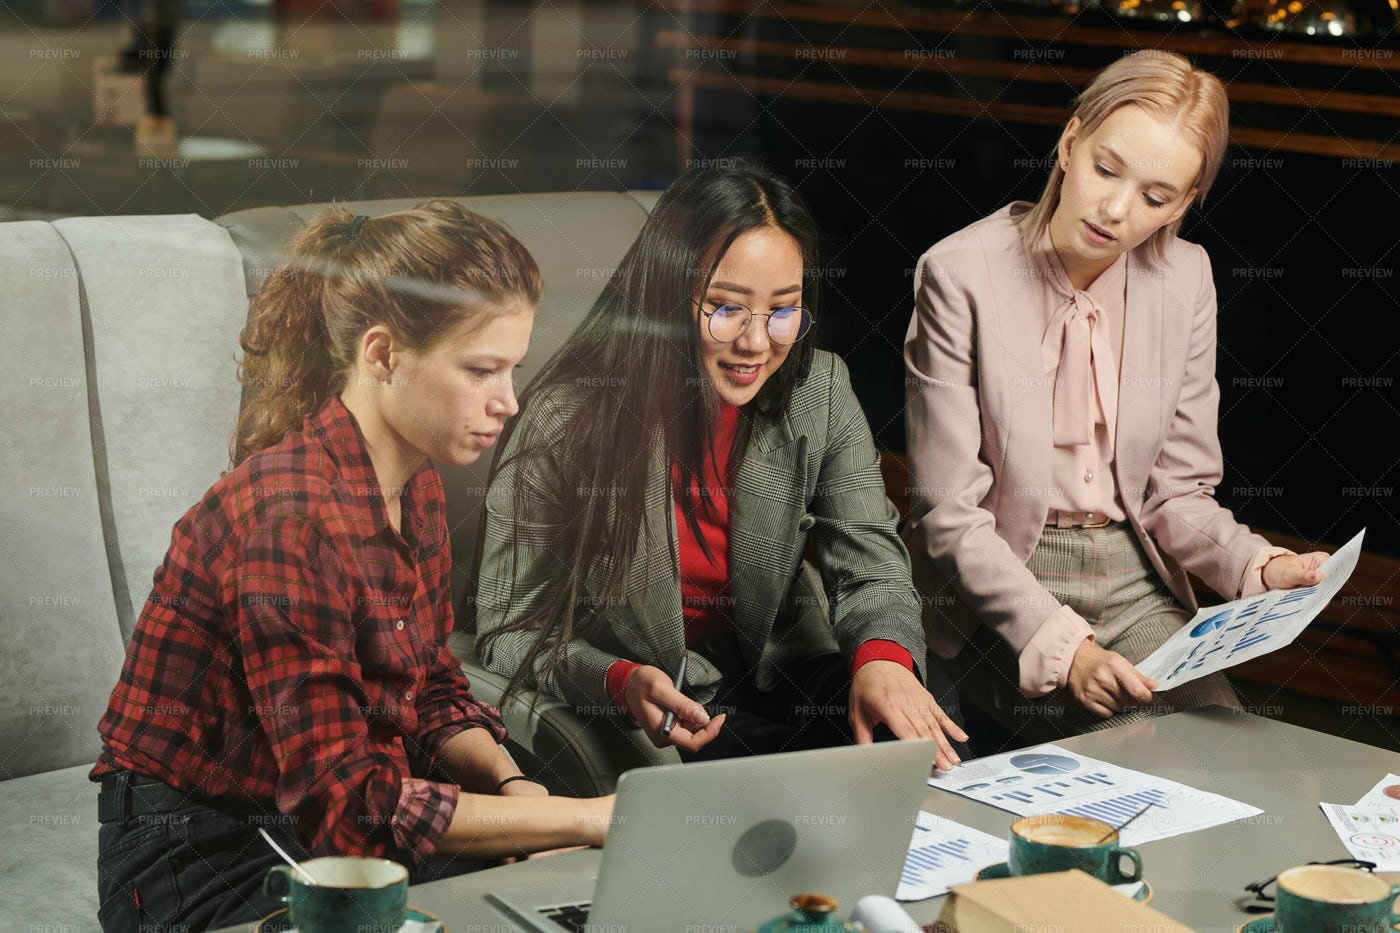 Students Working With Financial...: Stock Photos